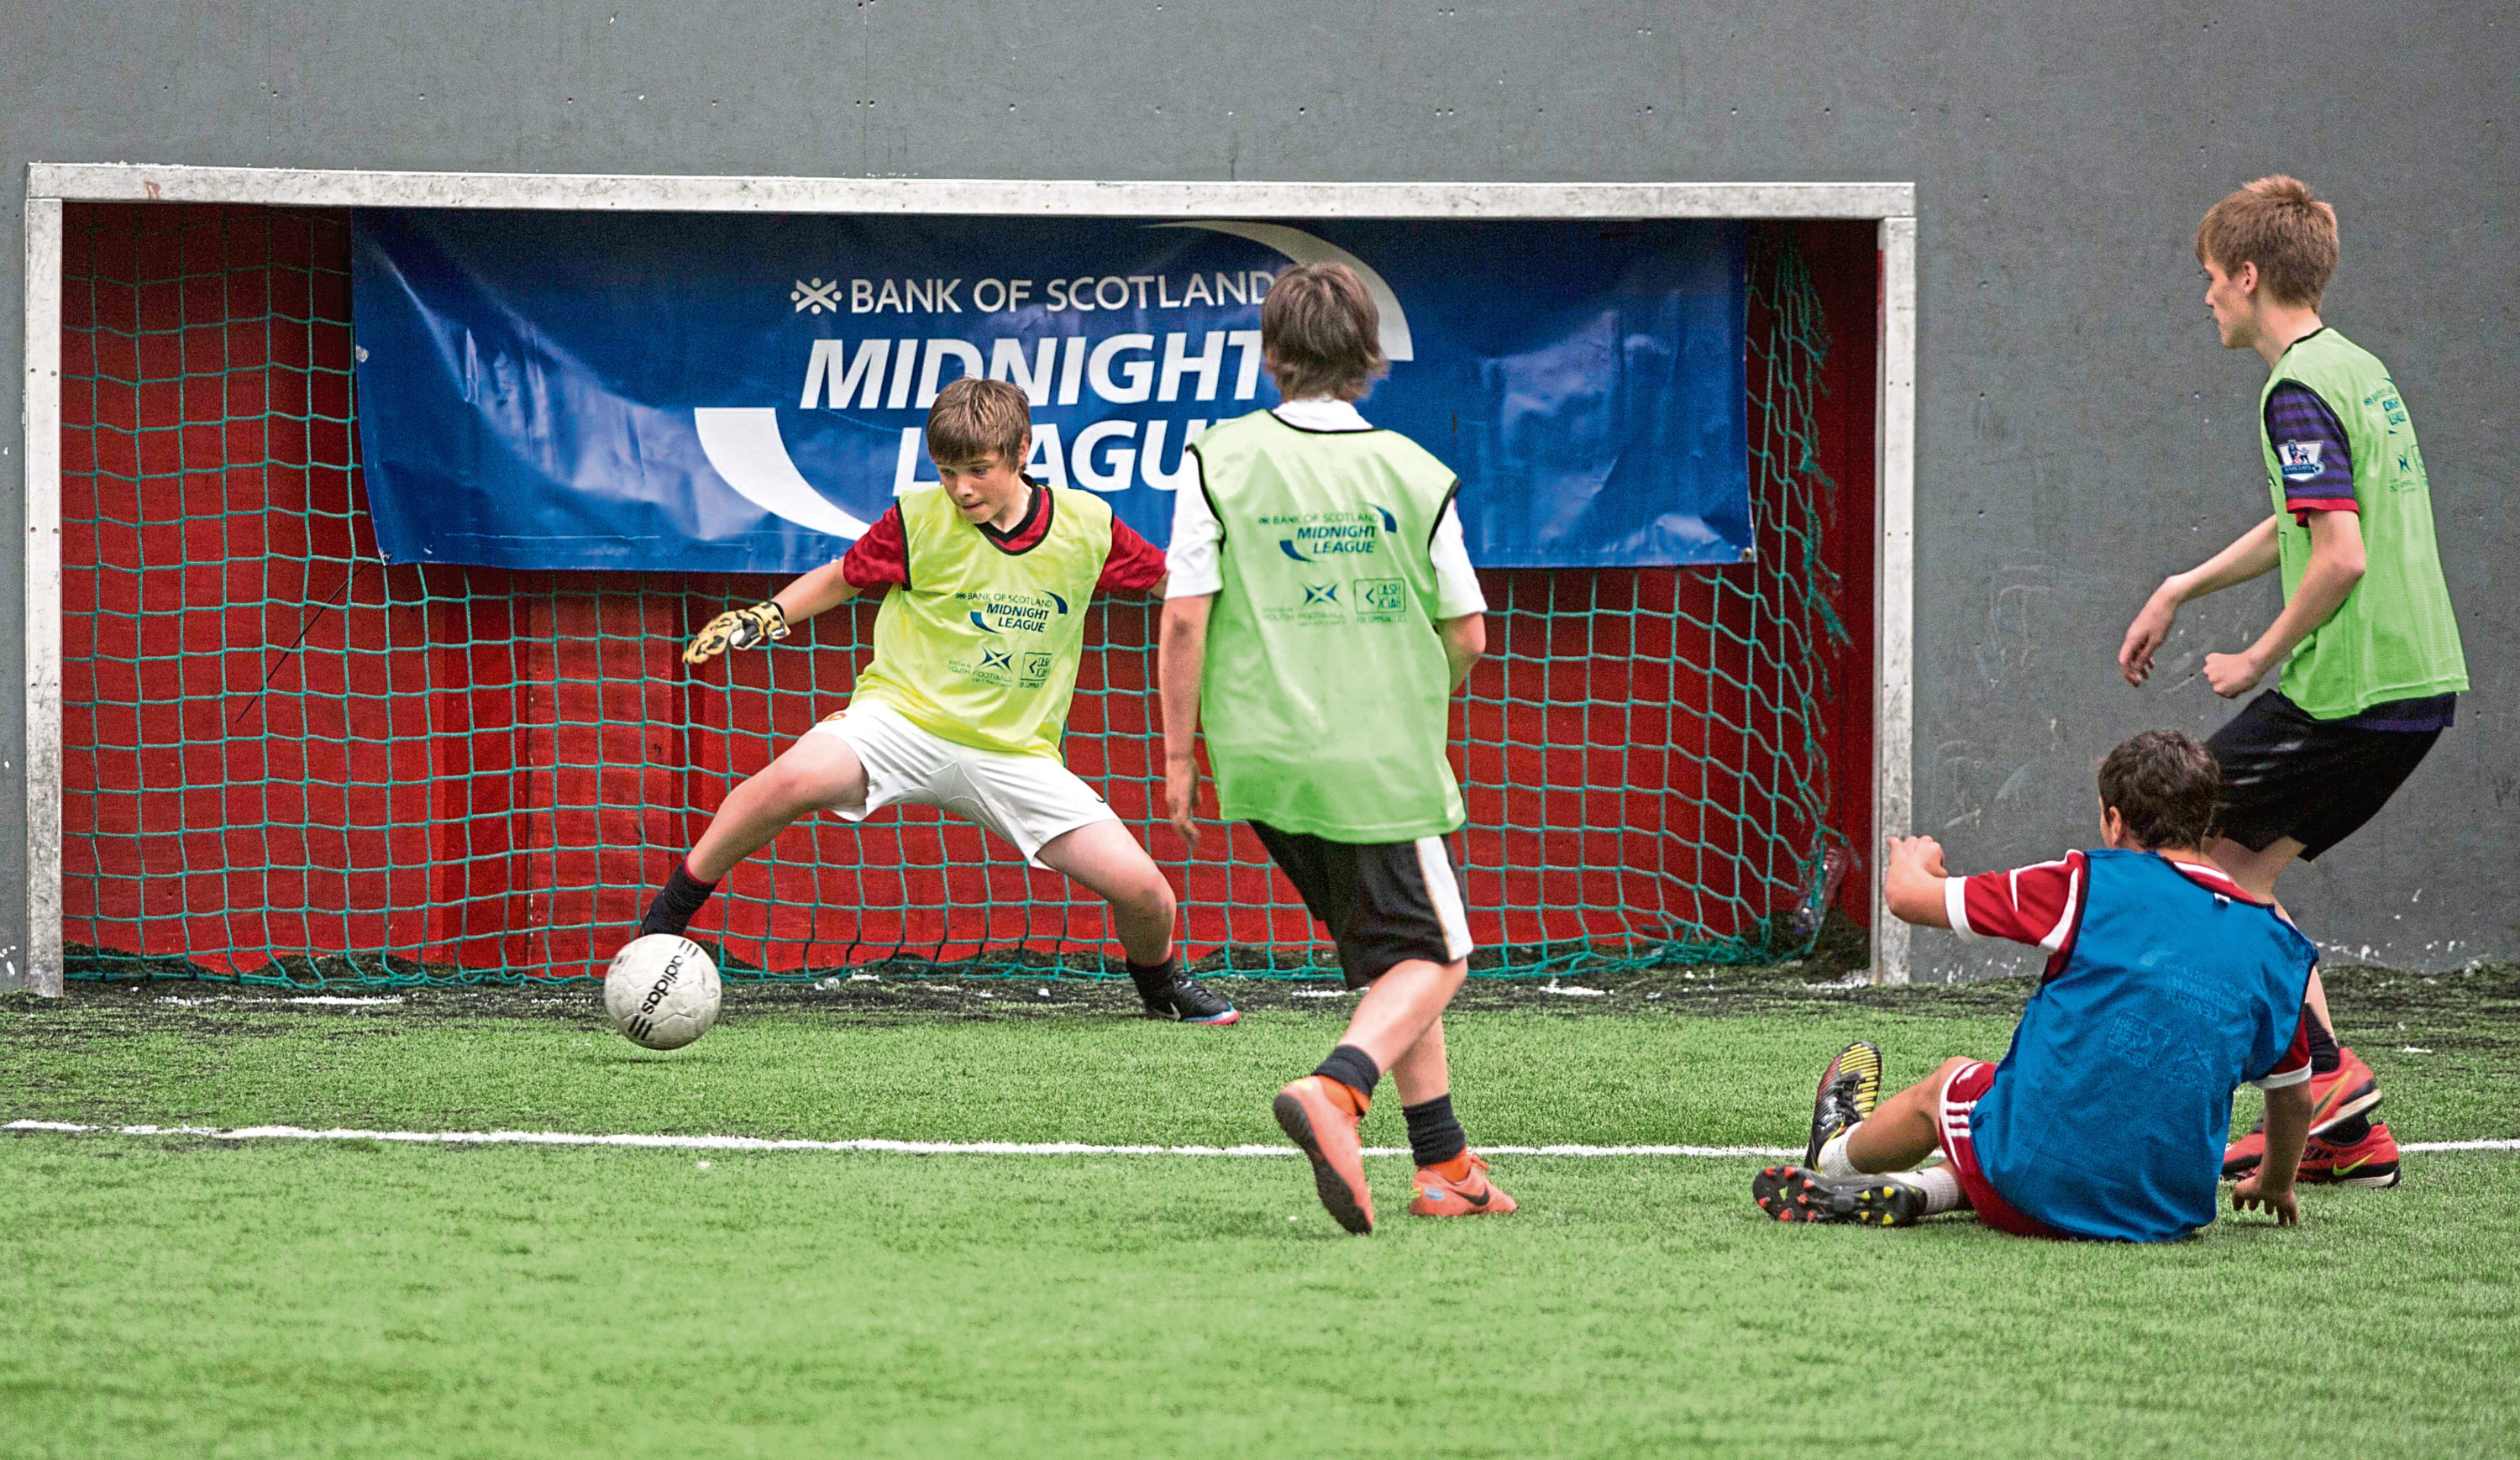 Picture of Bank of Scotland Midnight League North Final in Aberdeen. Taken at Strikers indoor football in Aberdeen